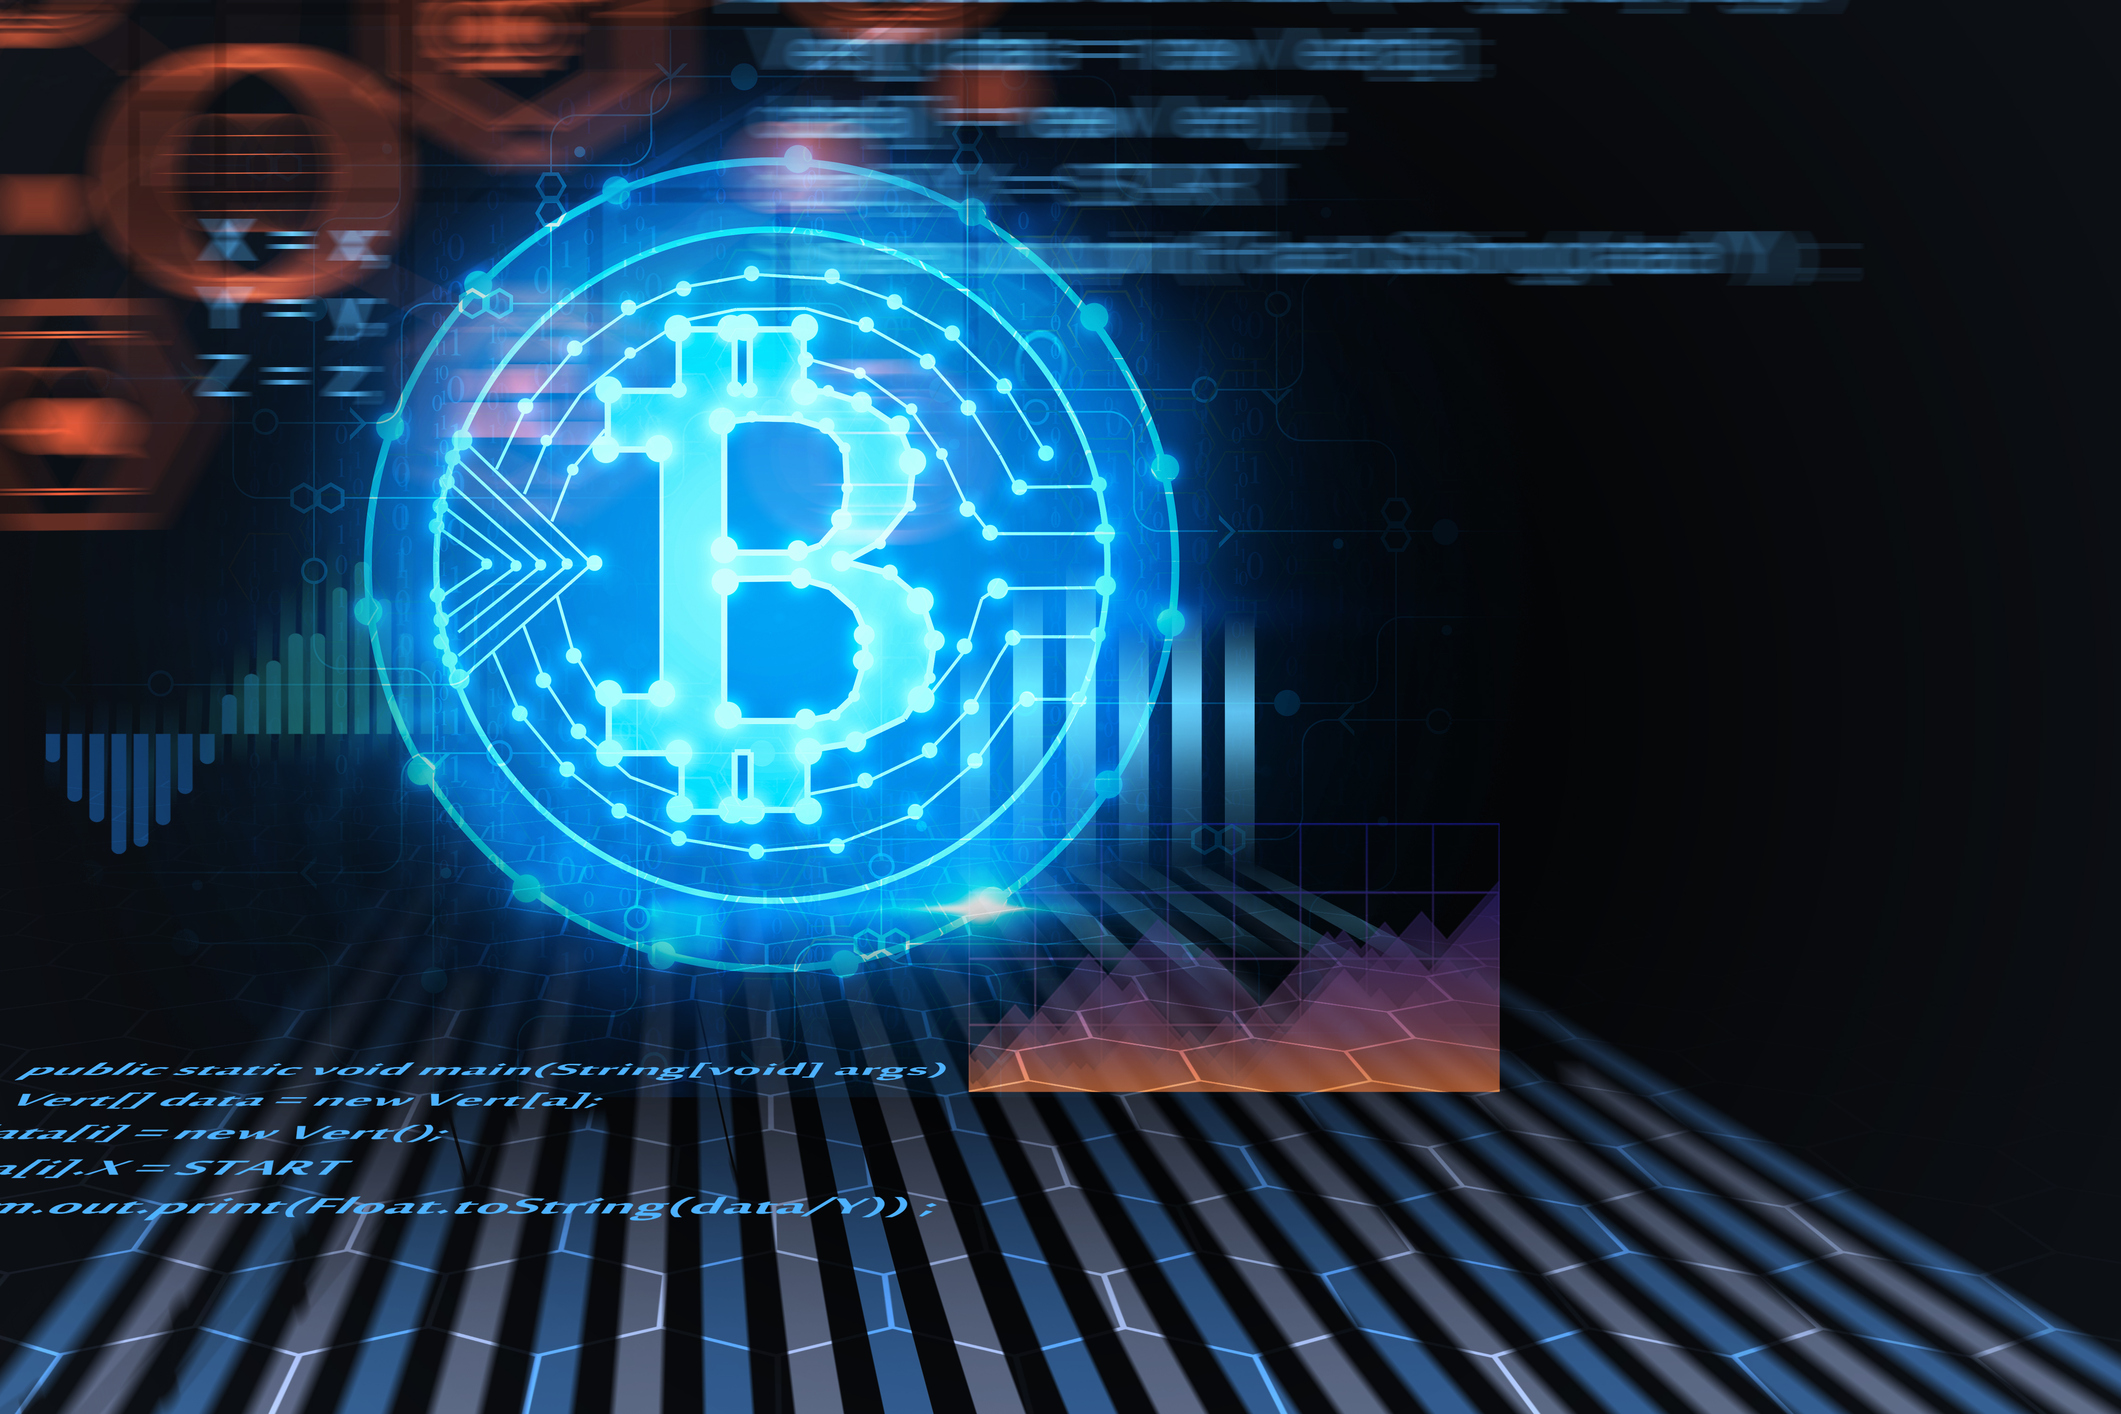 CryptoCurriencies - A new asset class was created in 2008 with the advent of the Bitcoin whitepaper by Satoshi Nakamoto. Based upon the principle of the blockchain, which is a de-centralized, immutable, and distributed trust-less ledger, cryptocurrencies have exploded in use and value over the last decade. I believe we're in the infancy of this growth.To all the early adopters out there, it is important to diversify your new wealth. Boise is the fastest growing city in the fastest growing state. Put your crypto gains to work in another rapidly growing asset: Real Estate.